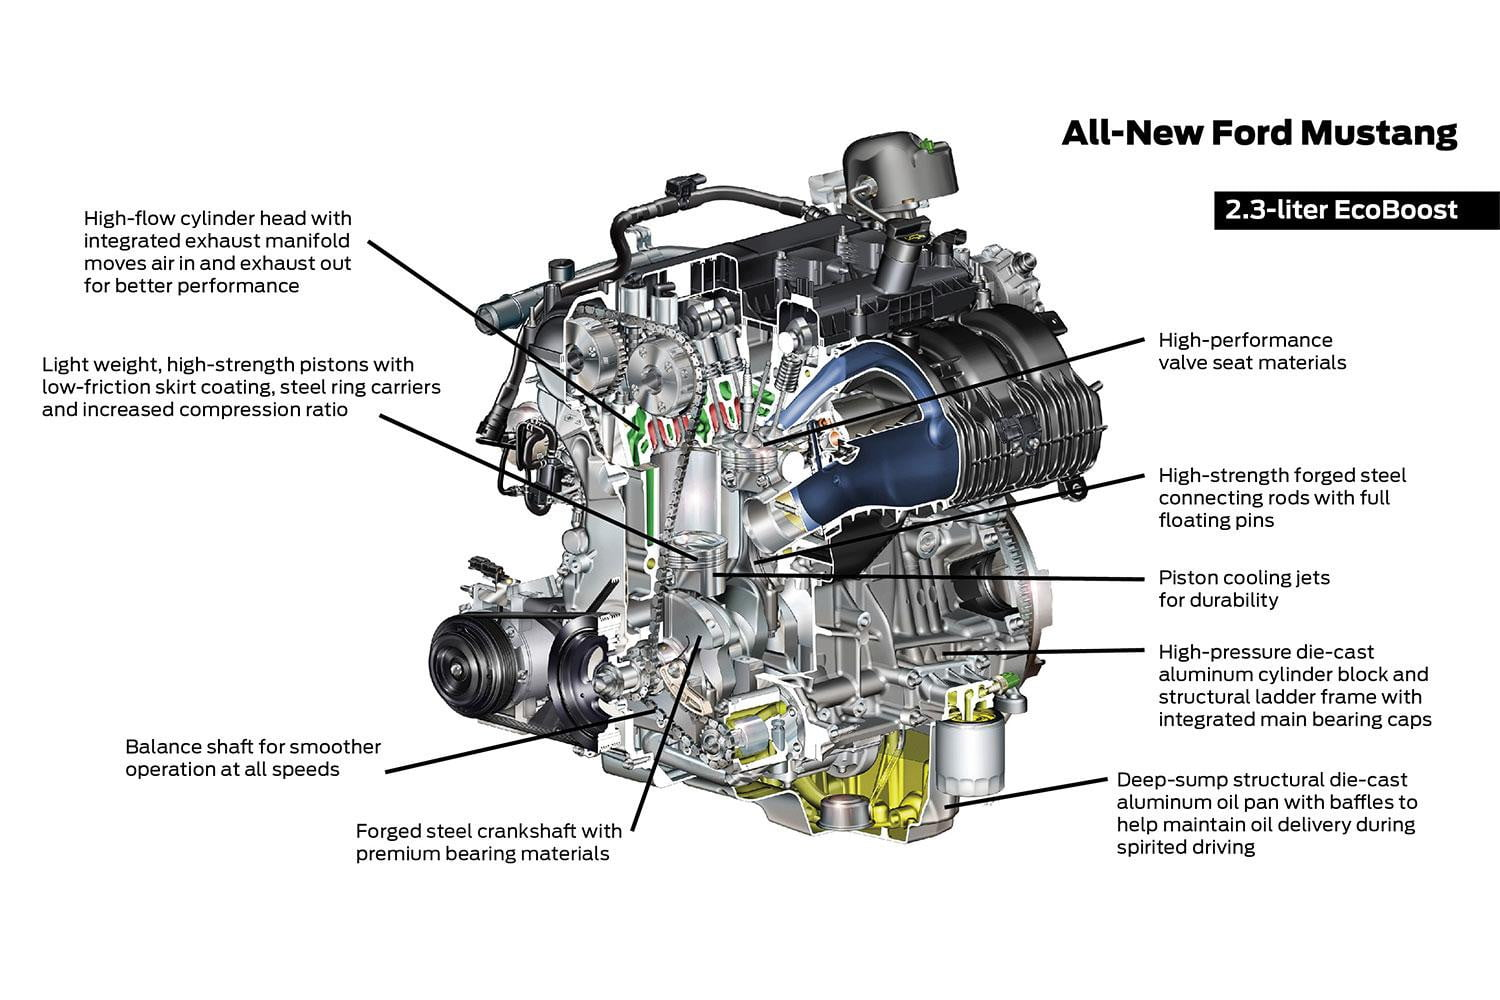 2015 ford mustang engine specs and rumors digital trends 2015 ford mustang 2 3 liter ecoboost